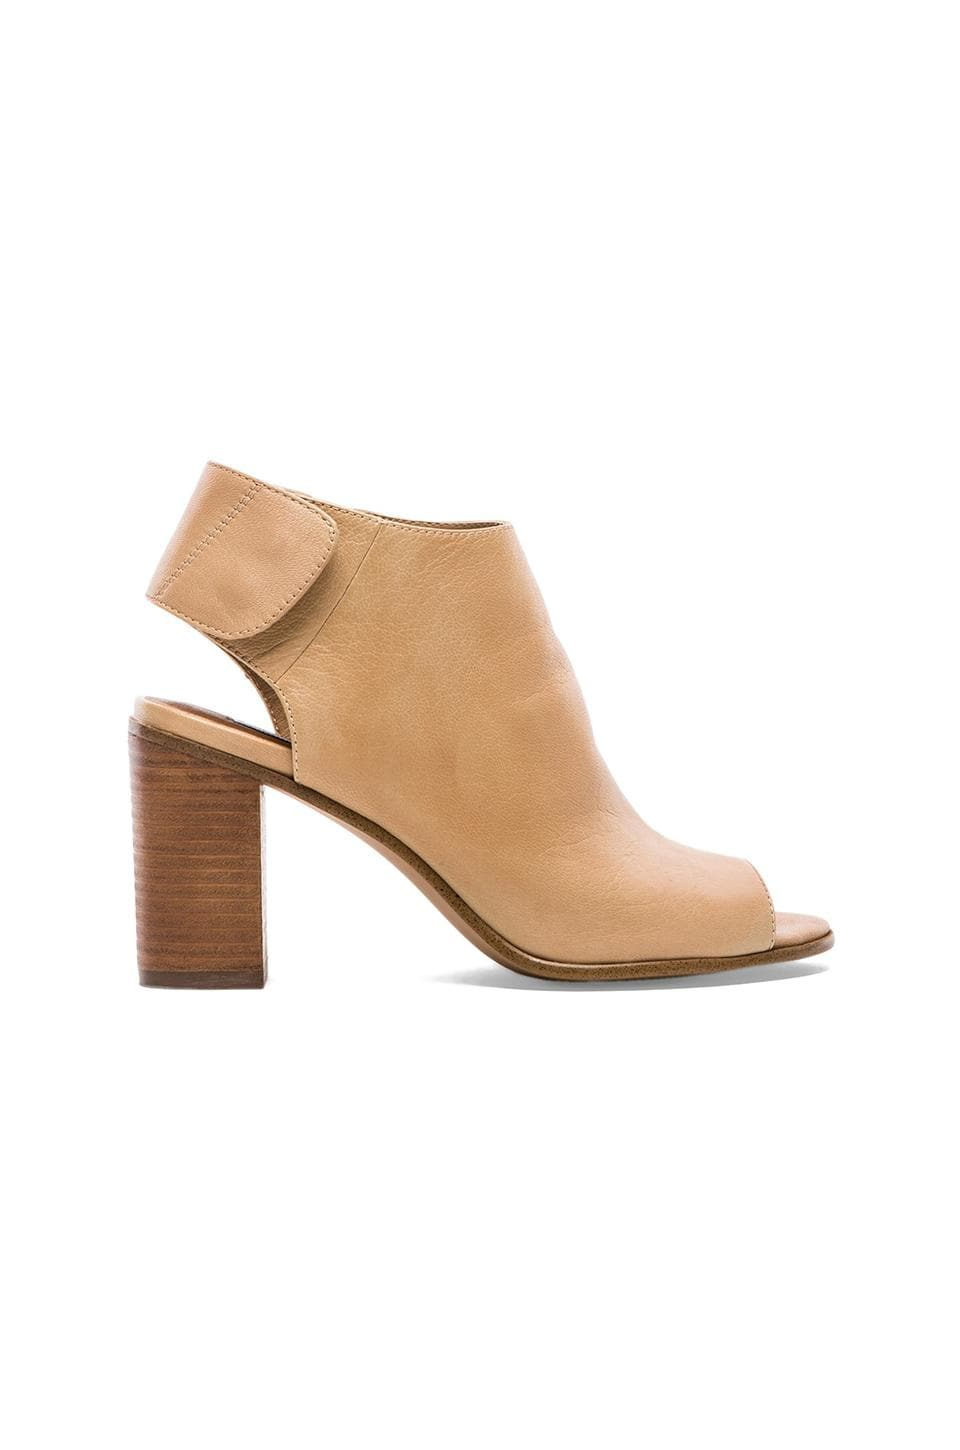 Steve Madden Nonstop Bootie in Natural Leather